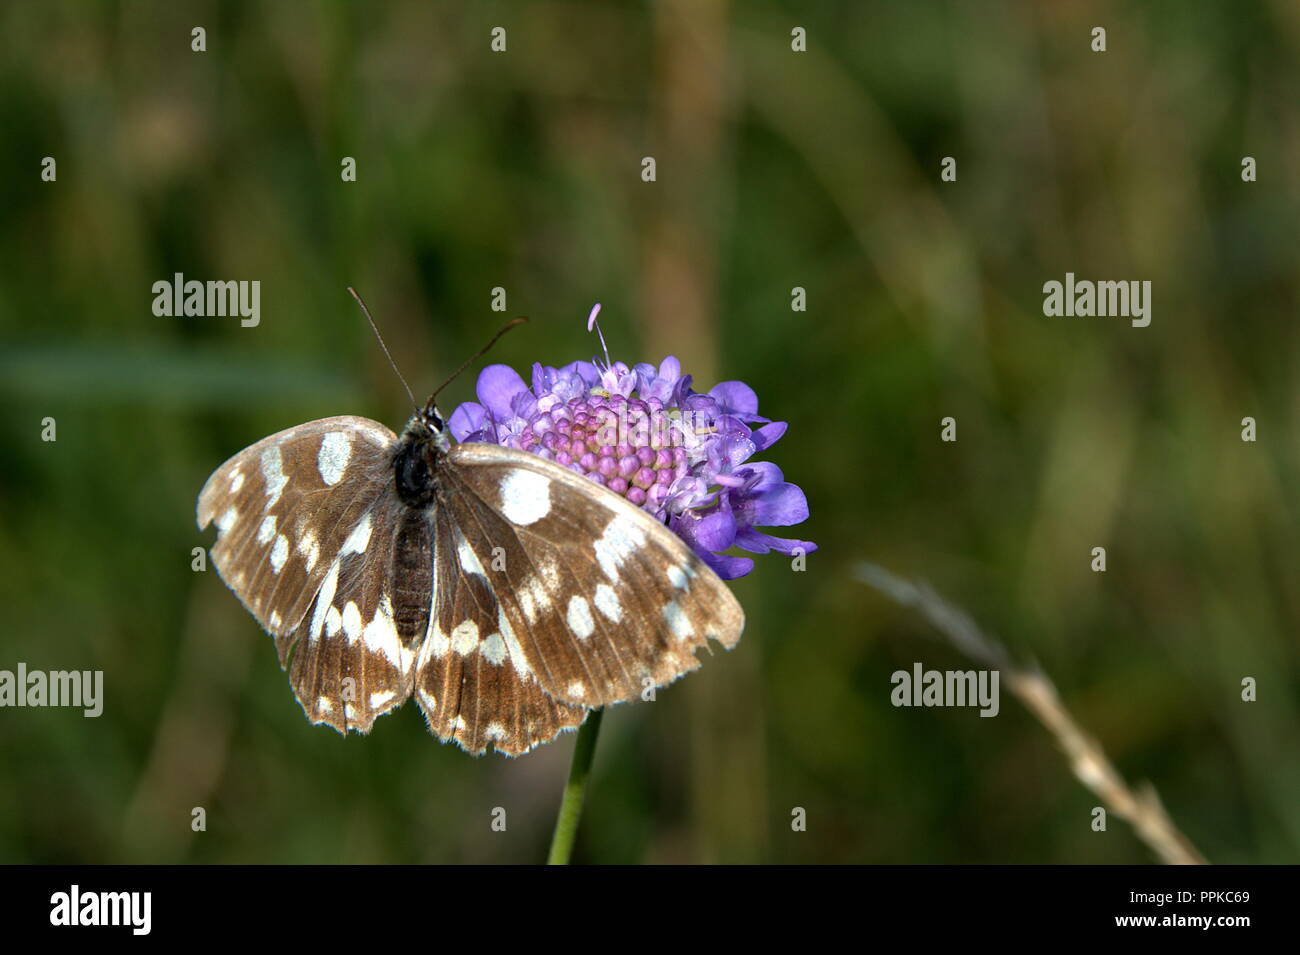 Black and white butterfly, stay on the blue flower and wait best photography shot, with blurred background - Stock Image